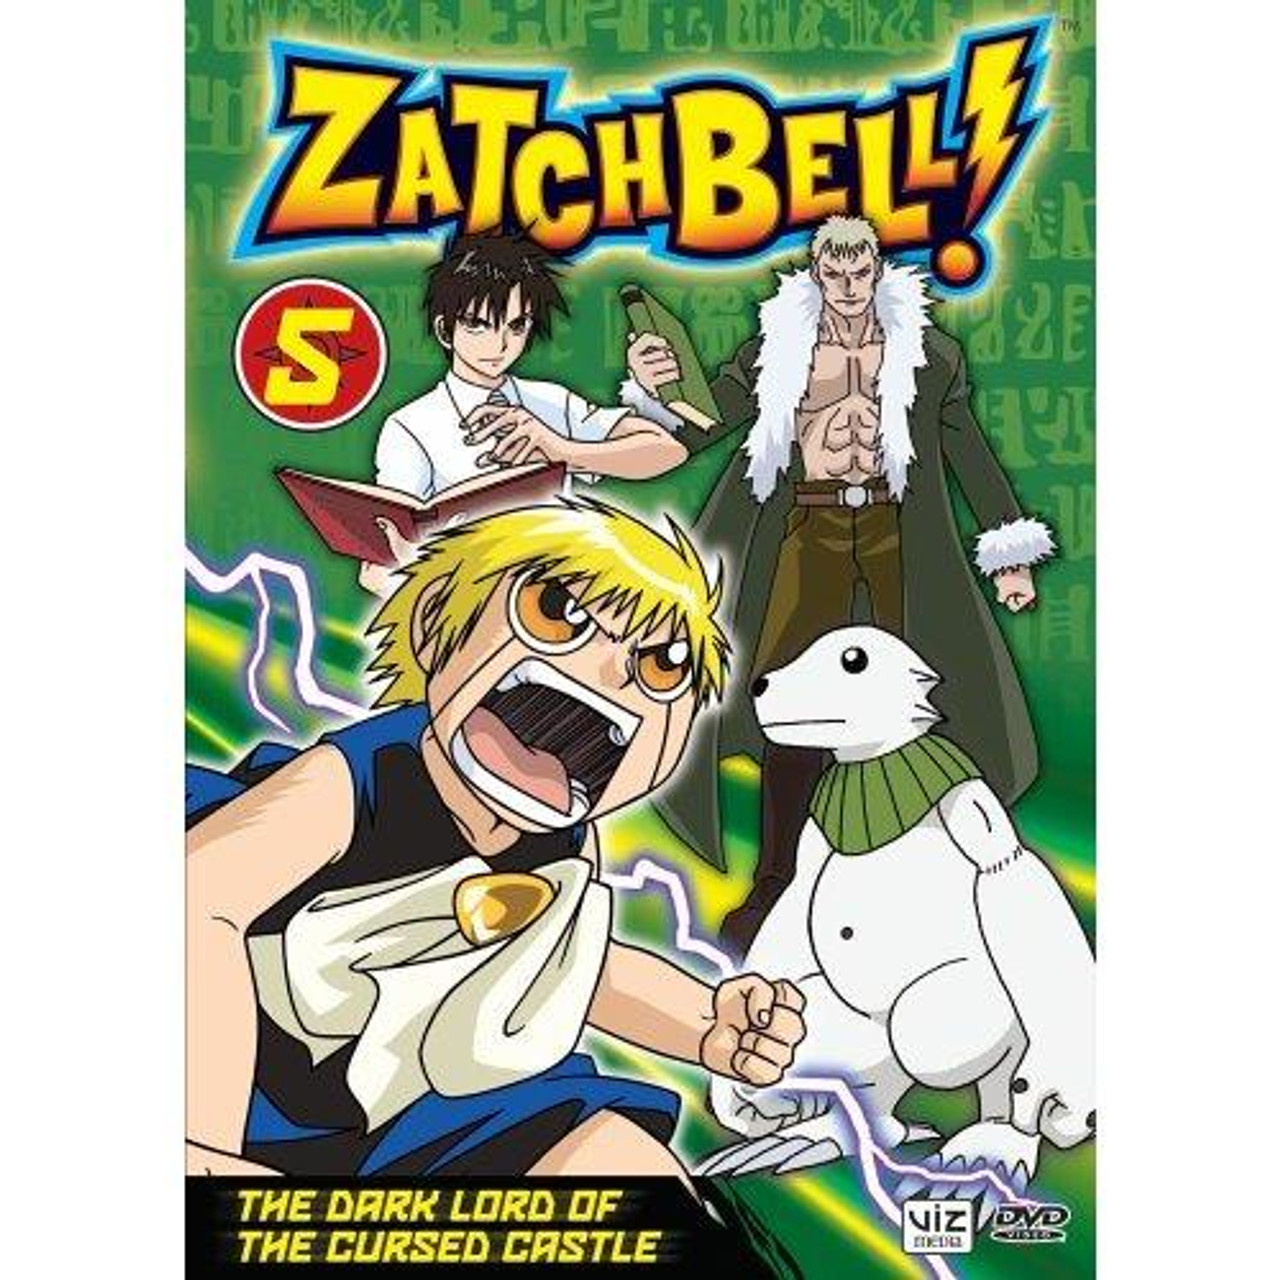 Zatch Bell The Dark Lord of the Cursed Castle DVD #5